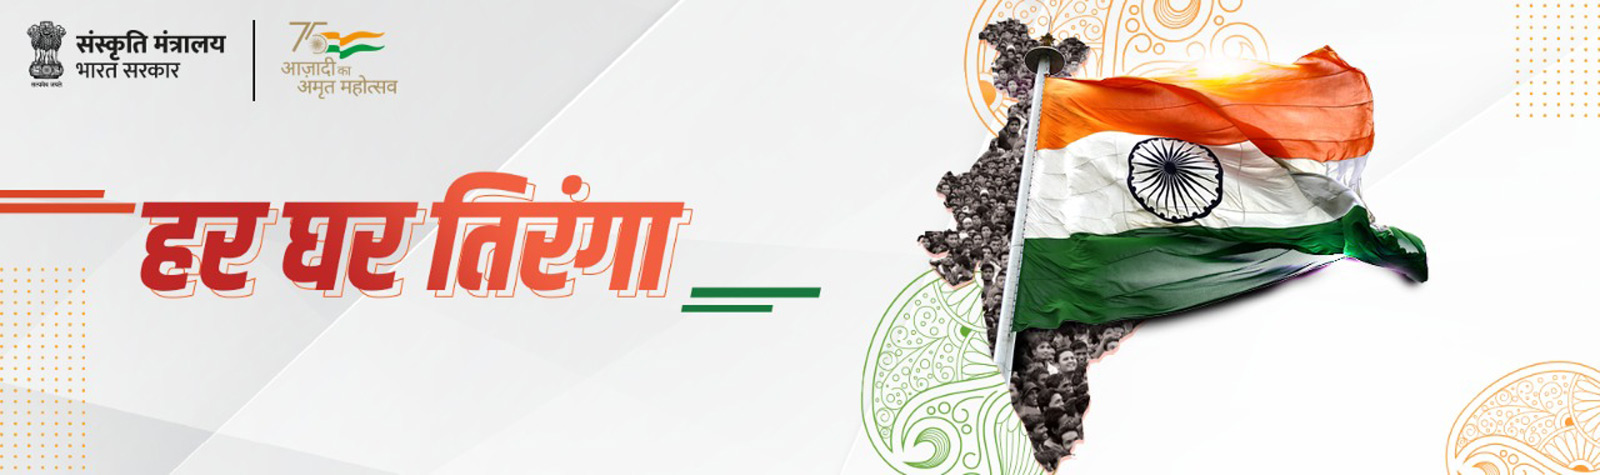 CISF | Central Industrial Security Force, Ministry of Home